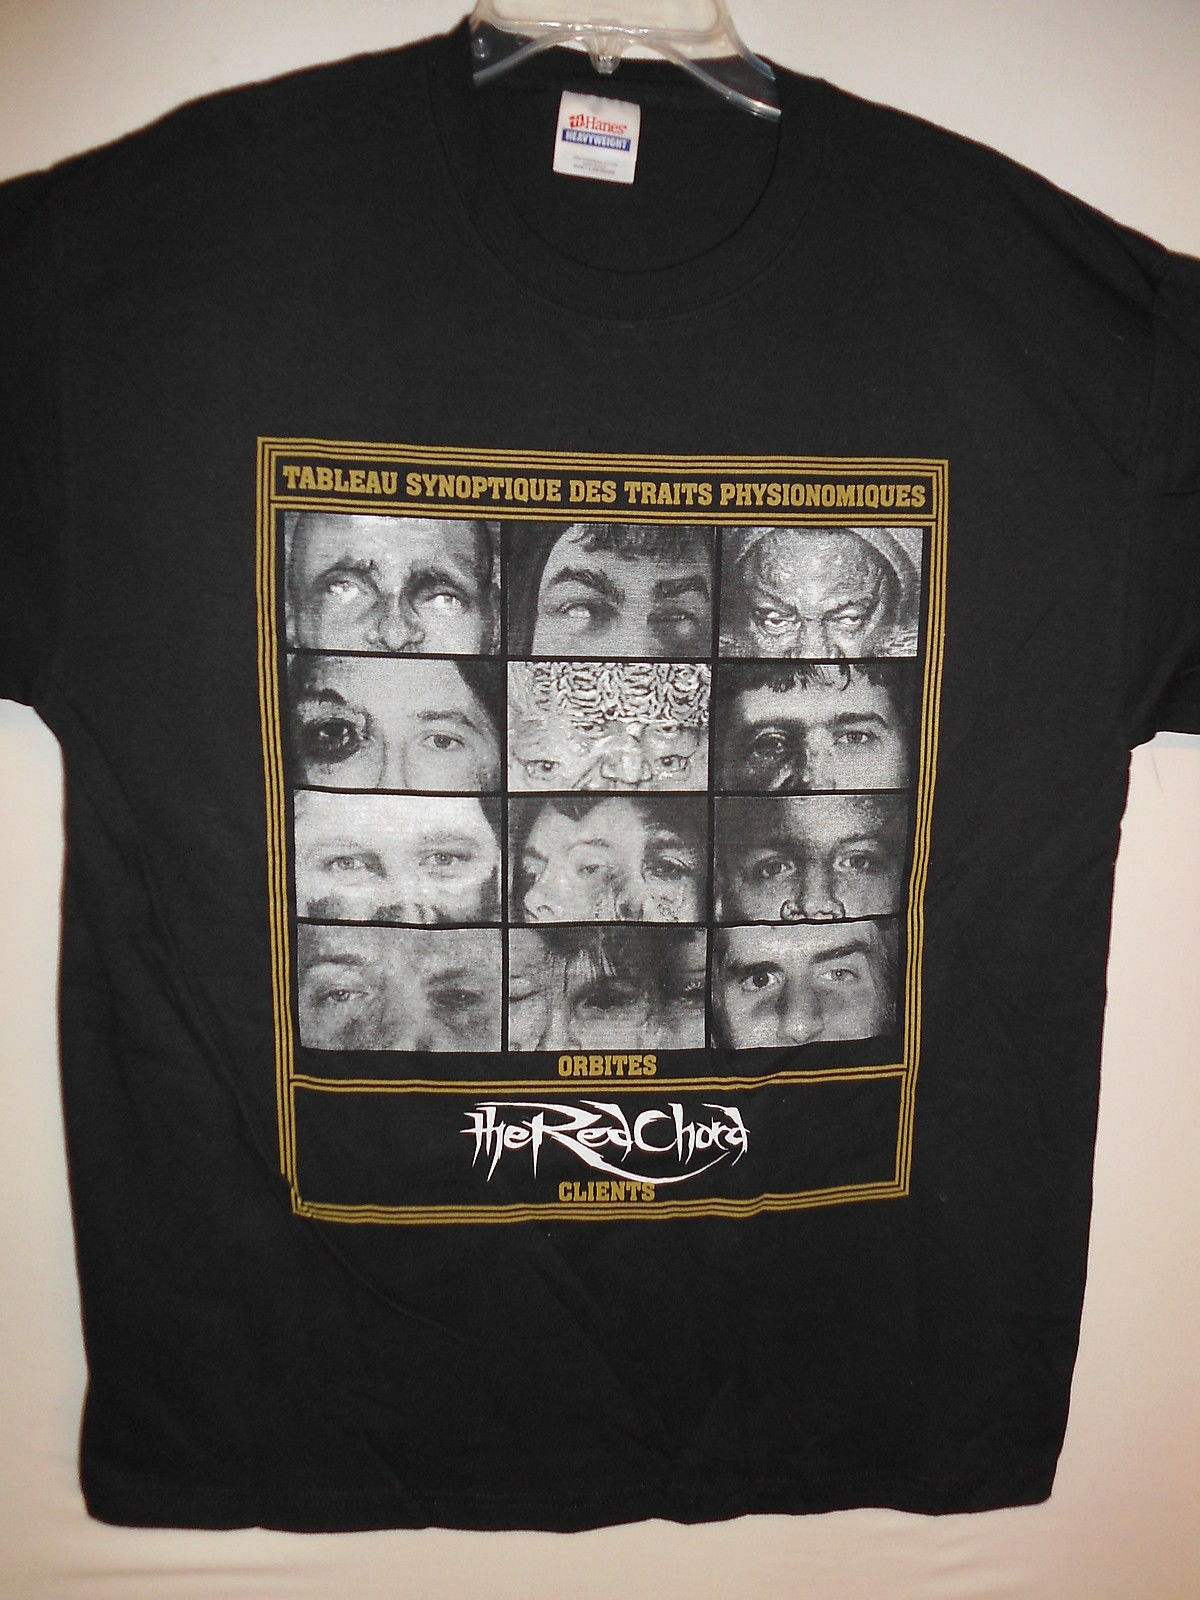 NEW - THE RED CHORD BAND / CONCERT / MUSIC T-SHIRT MEDIUM